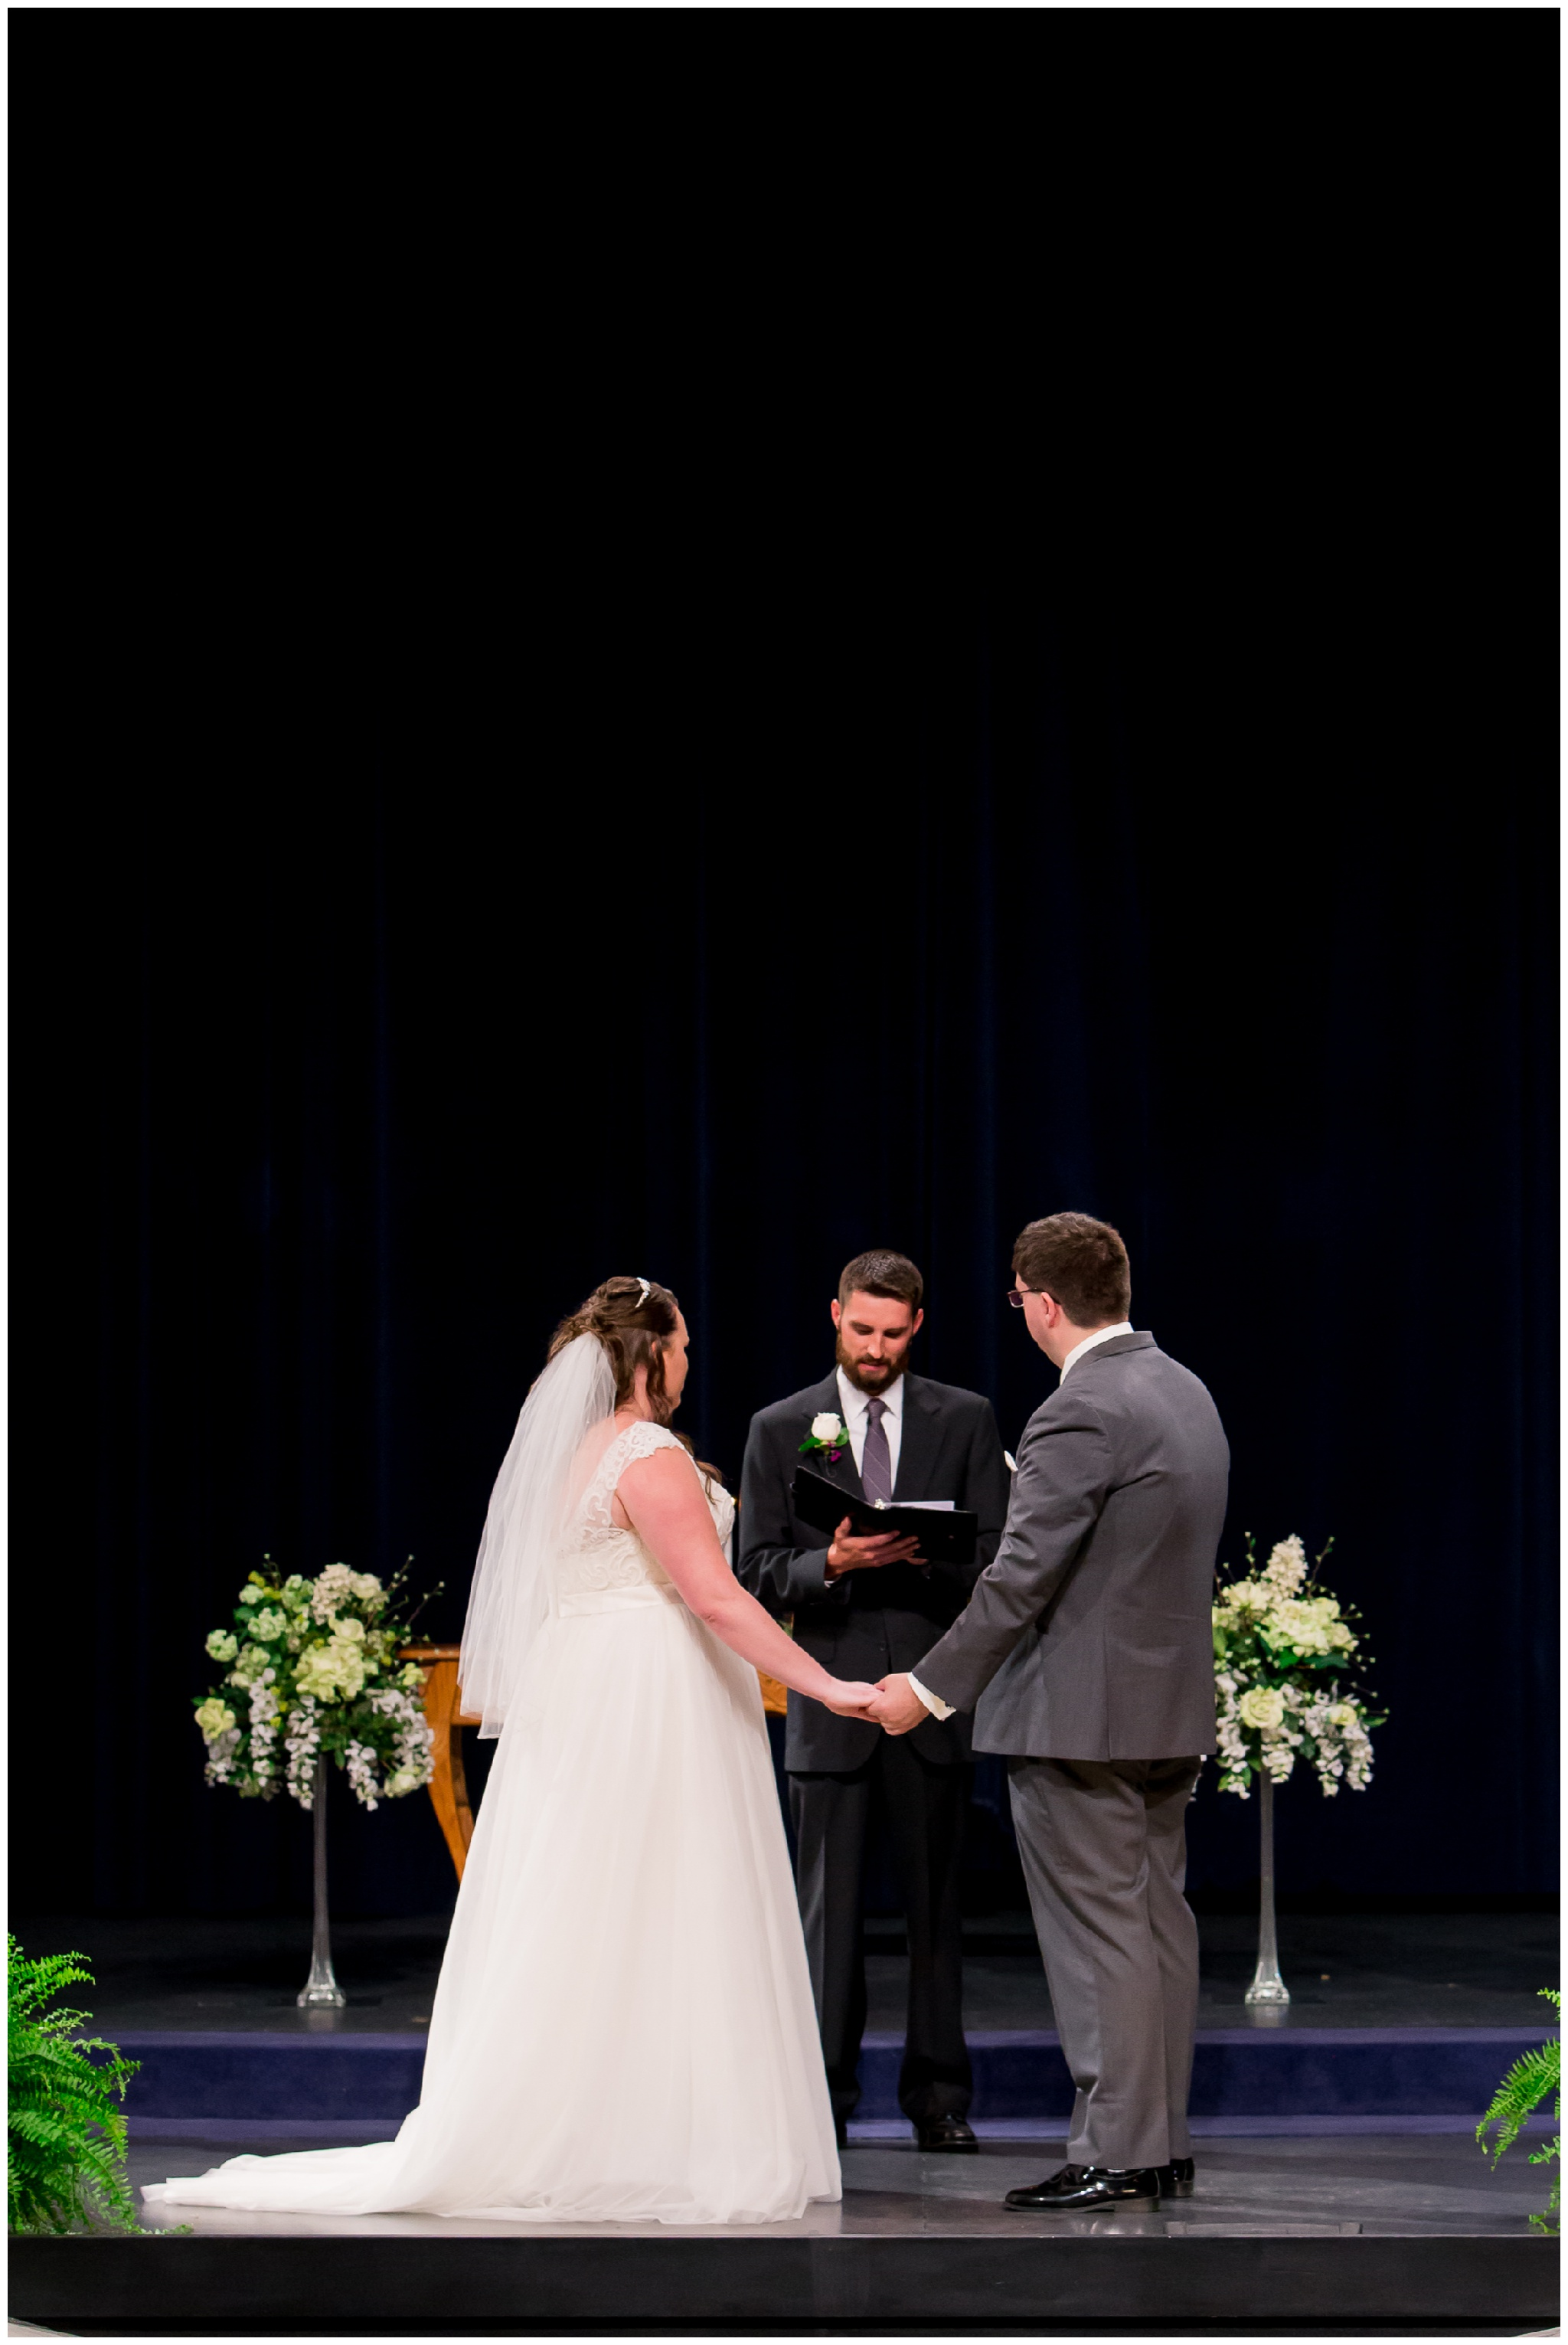 bride and groom hold hands during wedding ceremony at Crossroads Community Church in Kokomo Indiana